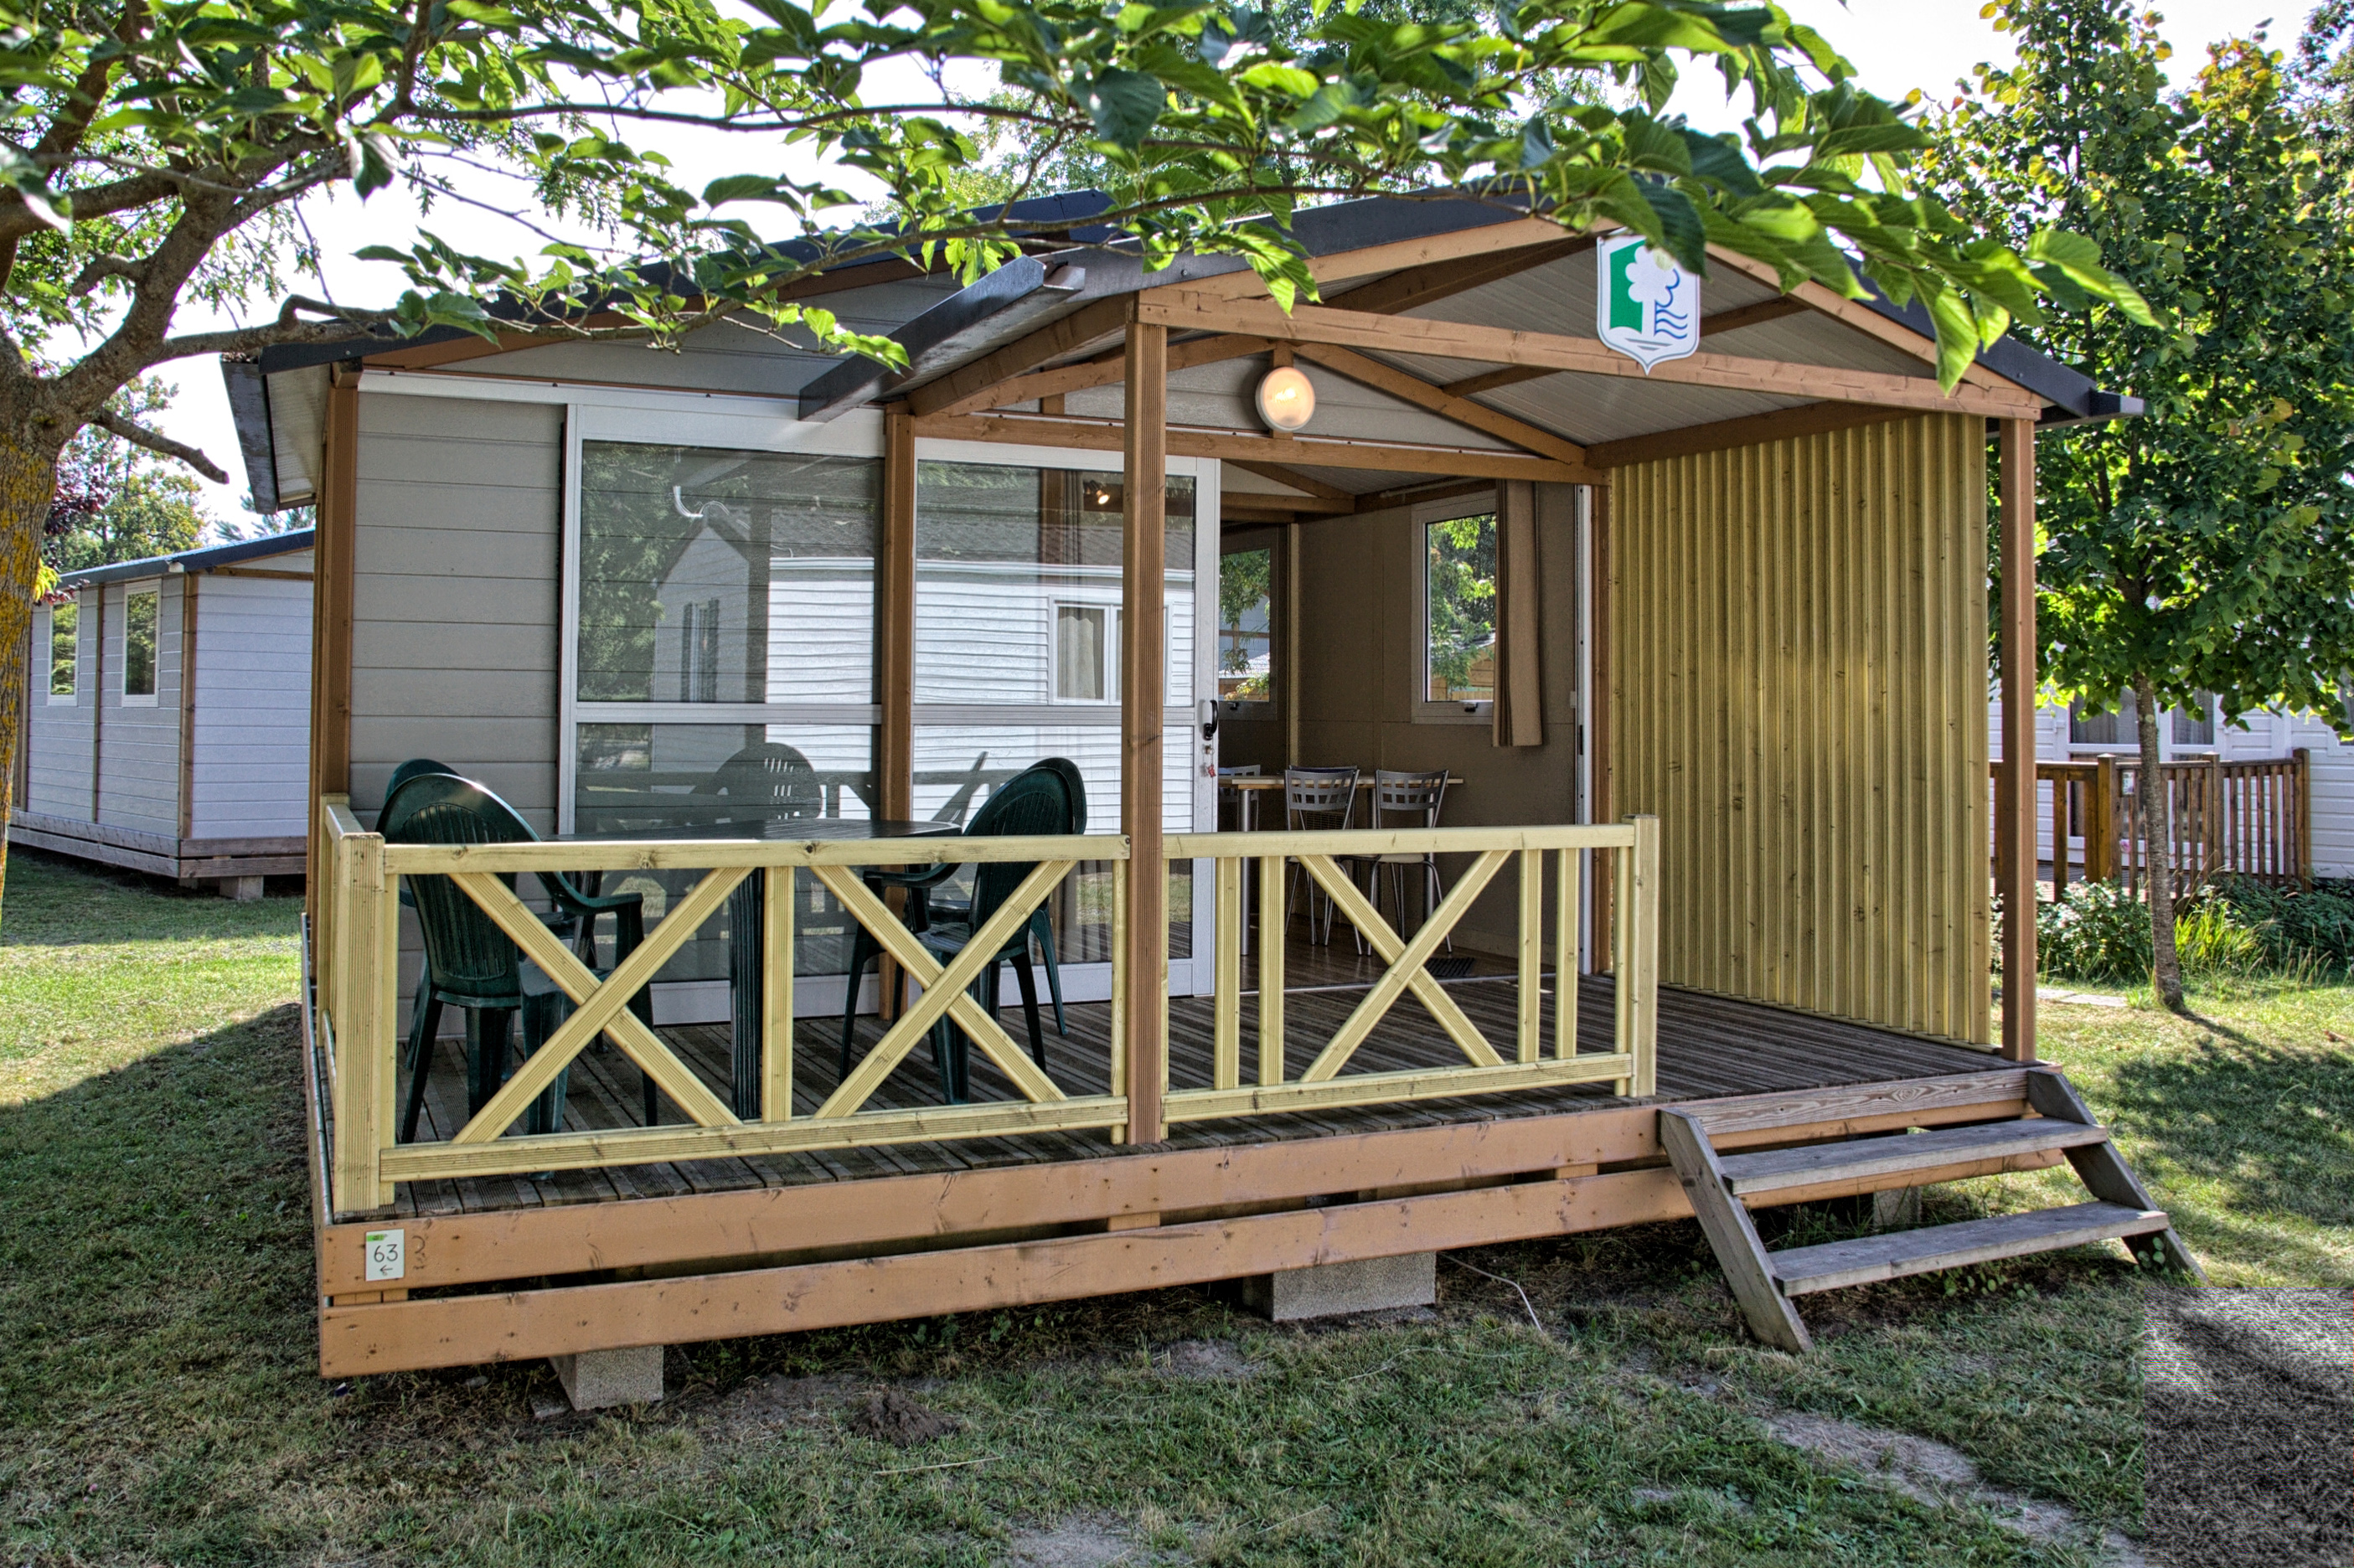 Location Chalet -Gironde -camping Médoc